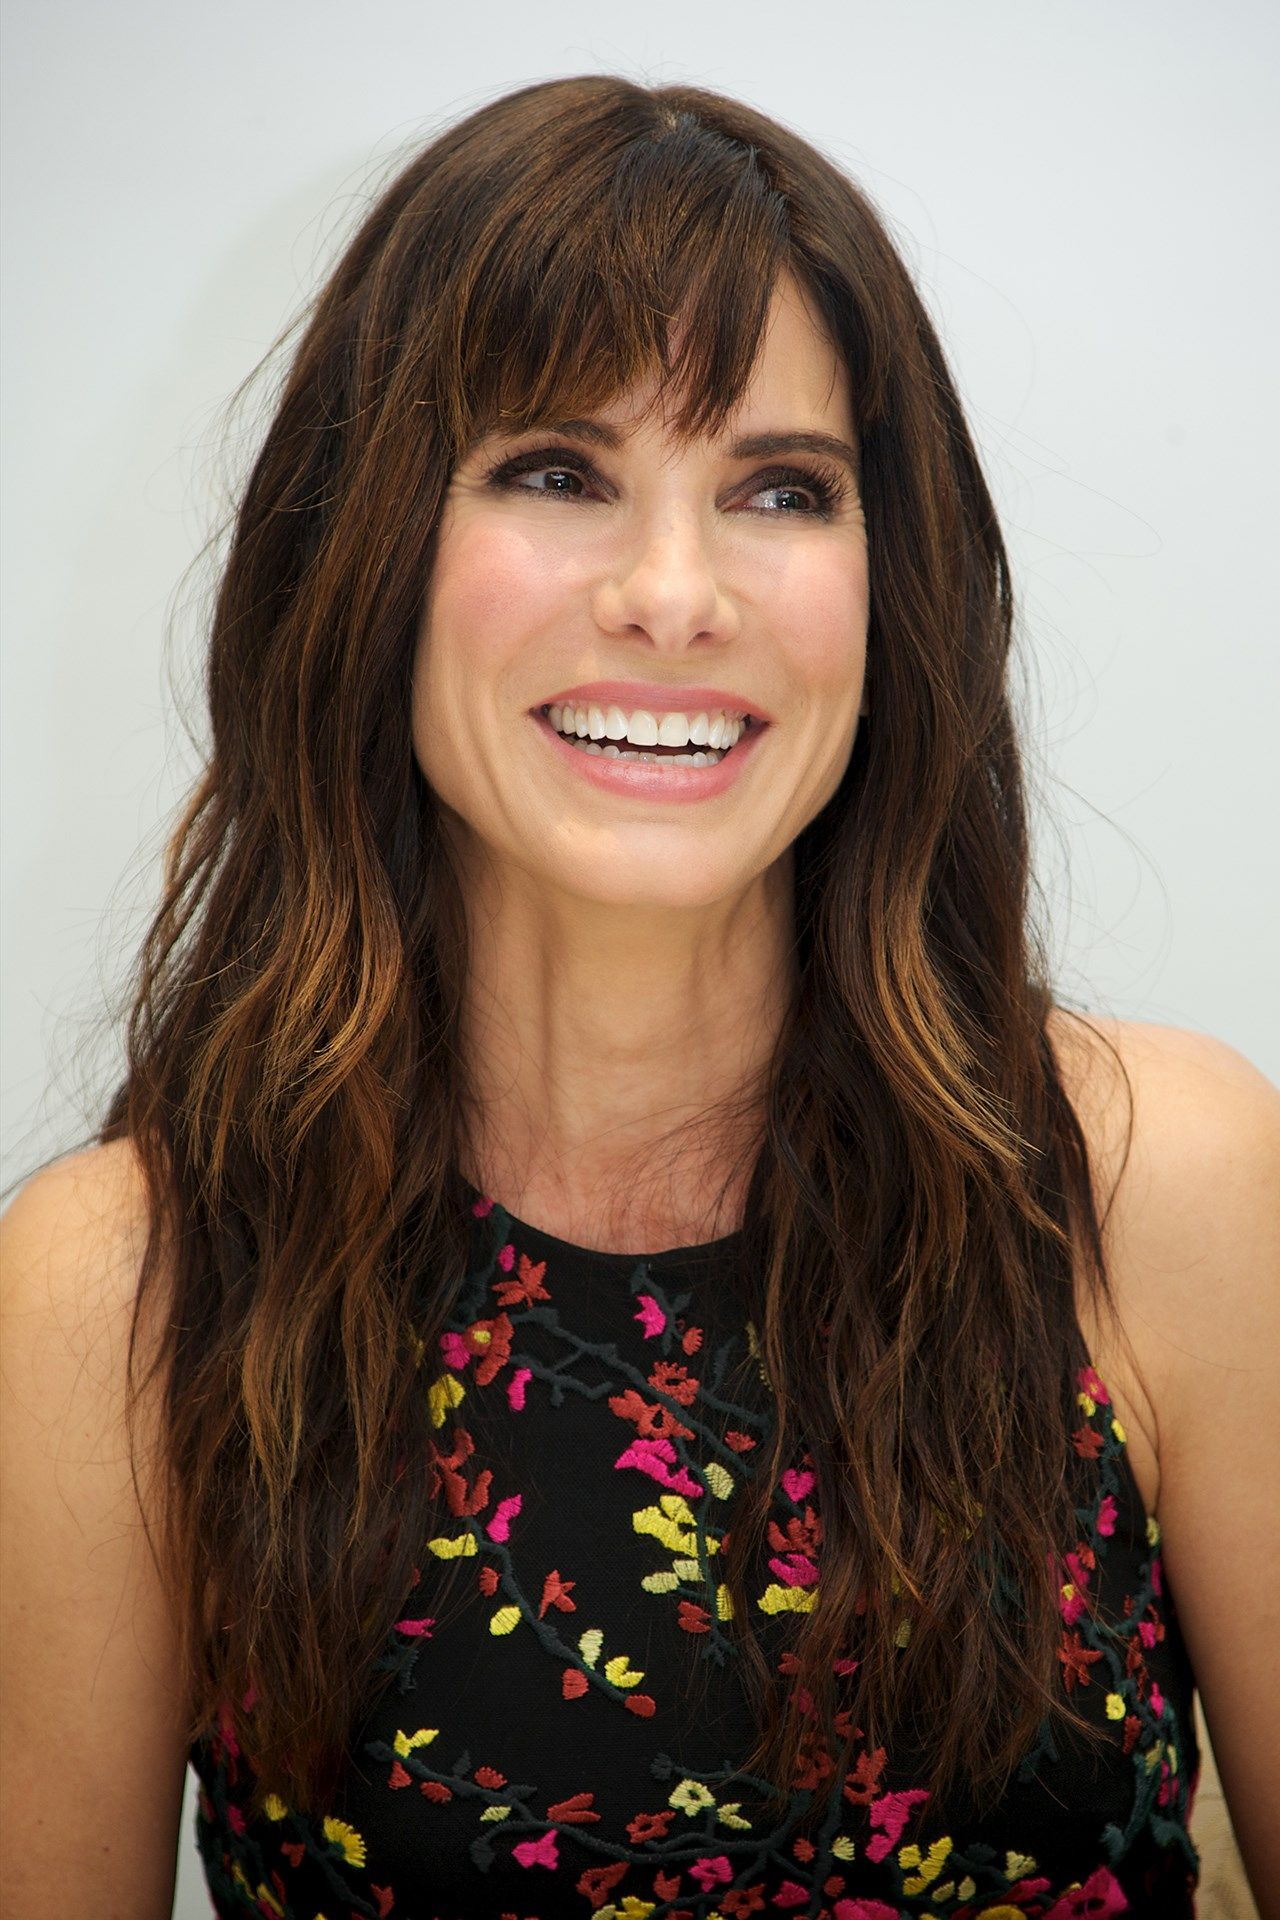 Best 25+ Movies with sandra bullock ideas on Pinterest ... Sandra Bullock